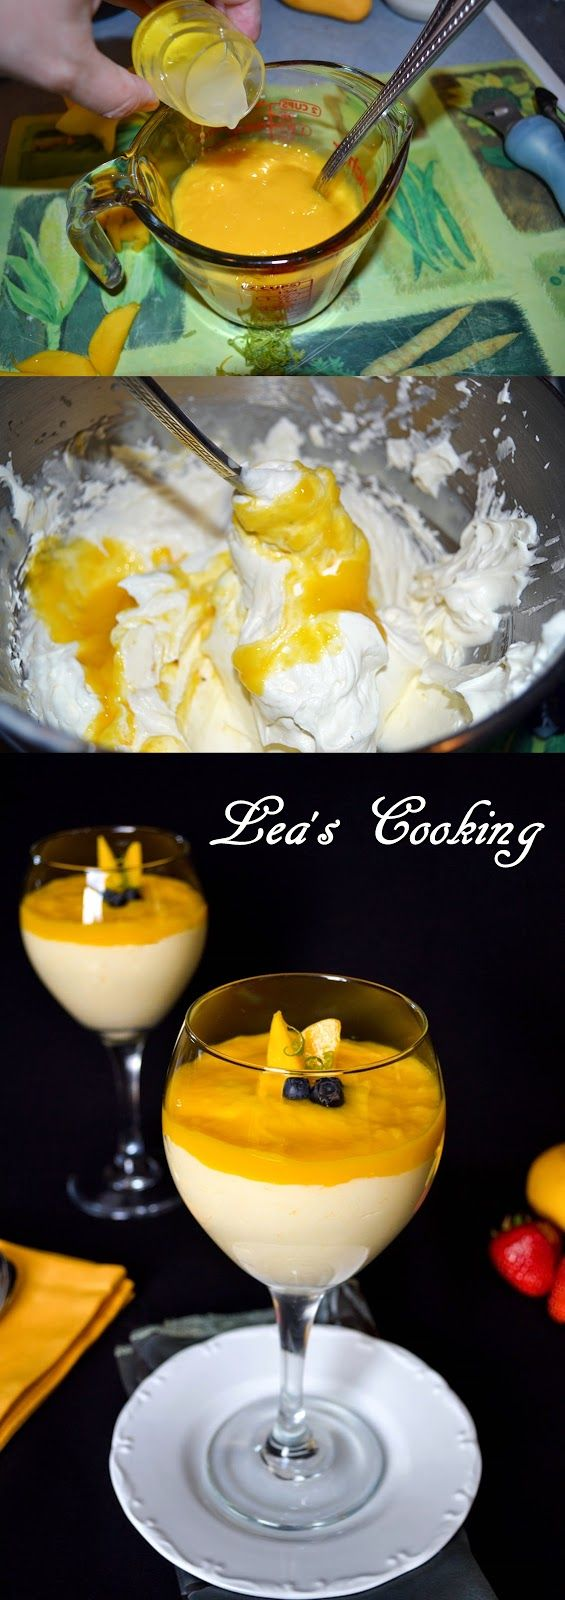 Lea's Cooking: Mango Mousse Recipe